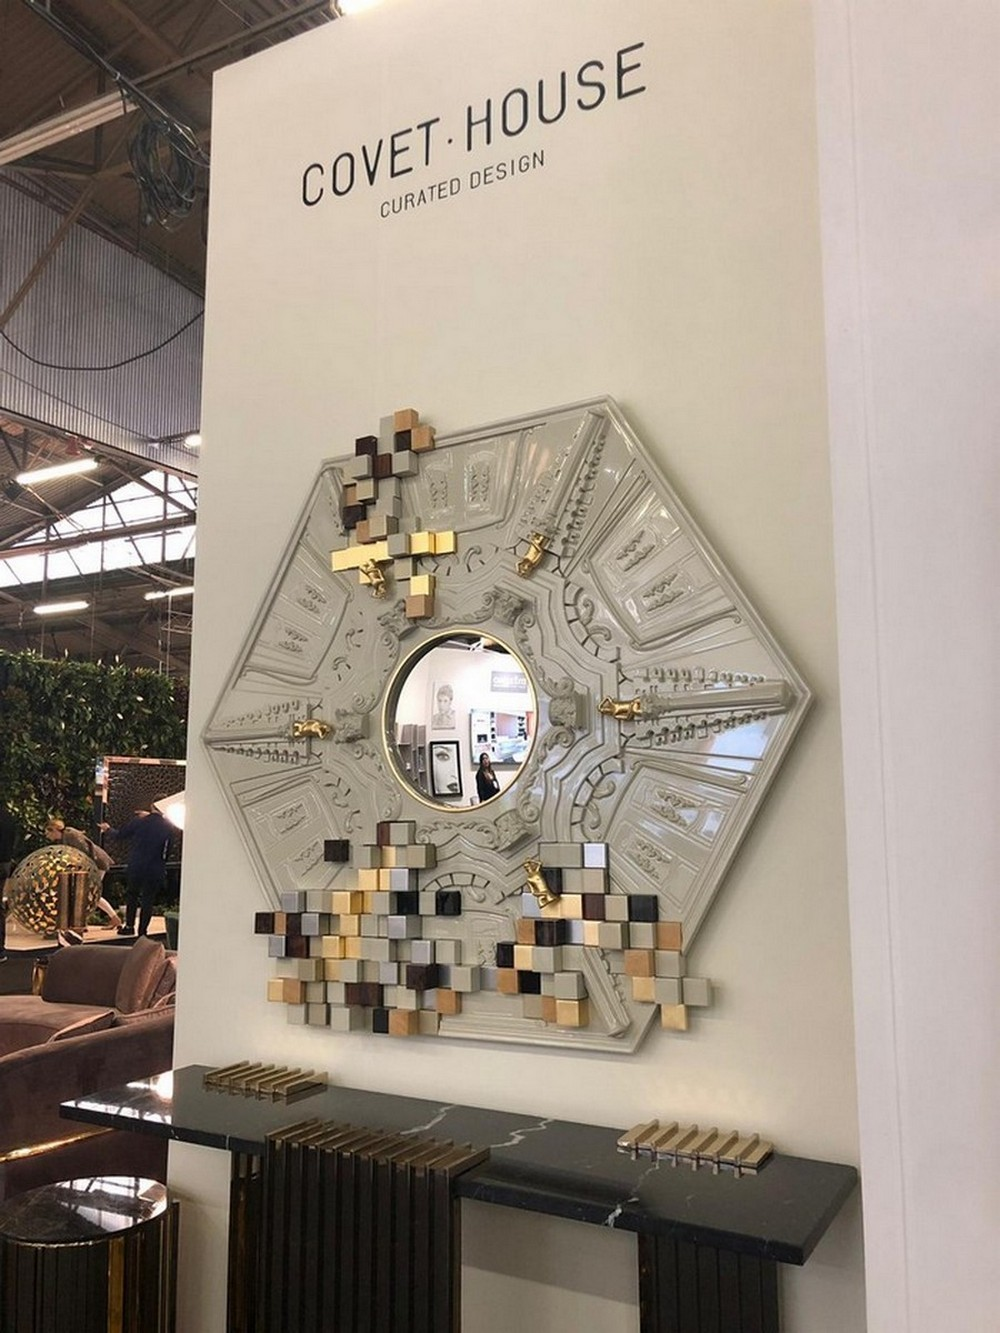 Covet House Blew Us Away At AD Design Show 2019 covet house Covet House Blew Us Away At AD Design Show 2019 Covet House Blew Us Away At AD Design Show 2019 6